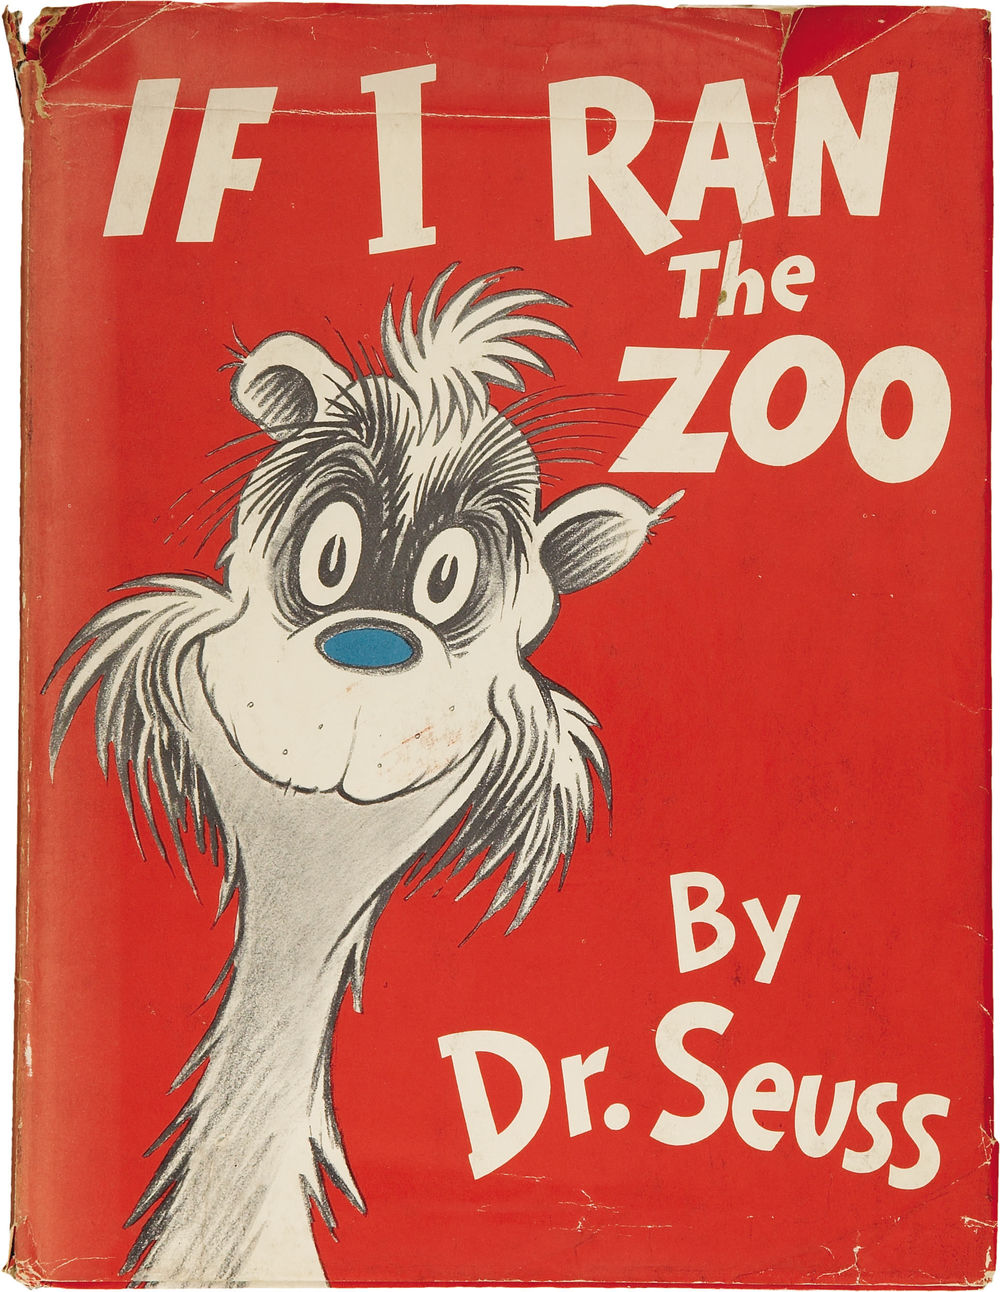 """I'll load up five boats with a family of Joats / Whose feet are like cows, but wear squirrelskin coats, / And sit like dogs, but have voices like goats— / Excepting they can't sing the very high notes."" If I Ran the Zoo. New York: Random House, [1950]. This one sold for $1314. on Heritage Auctions"